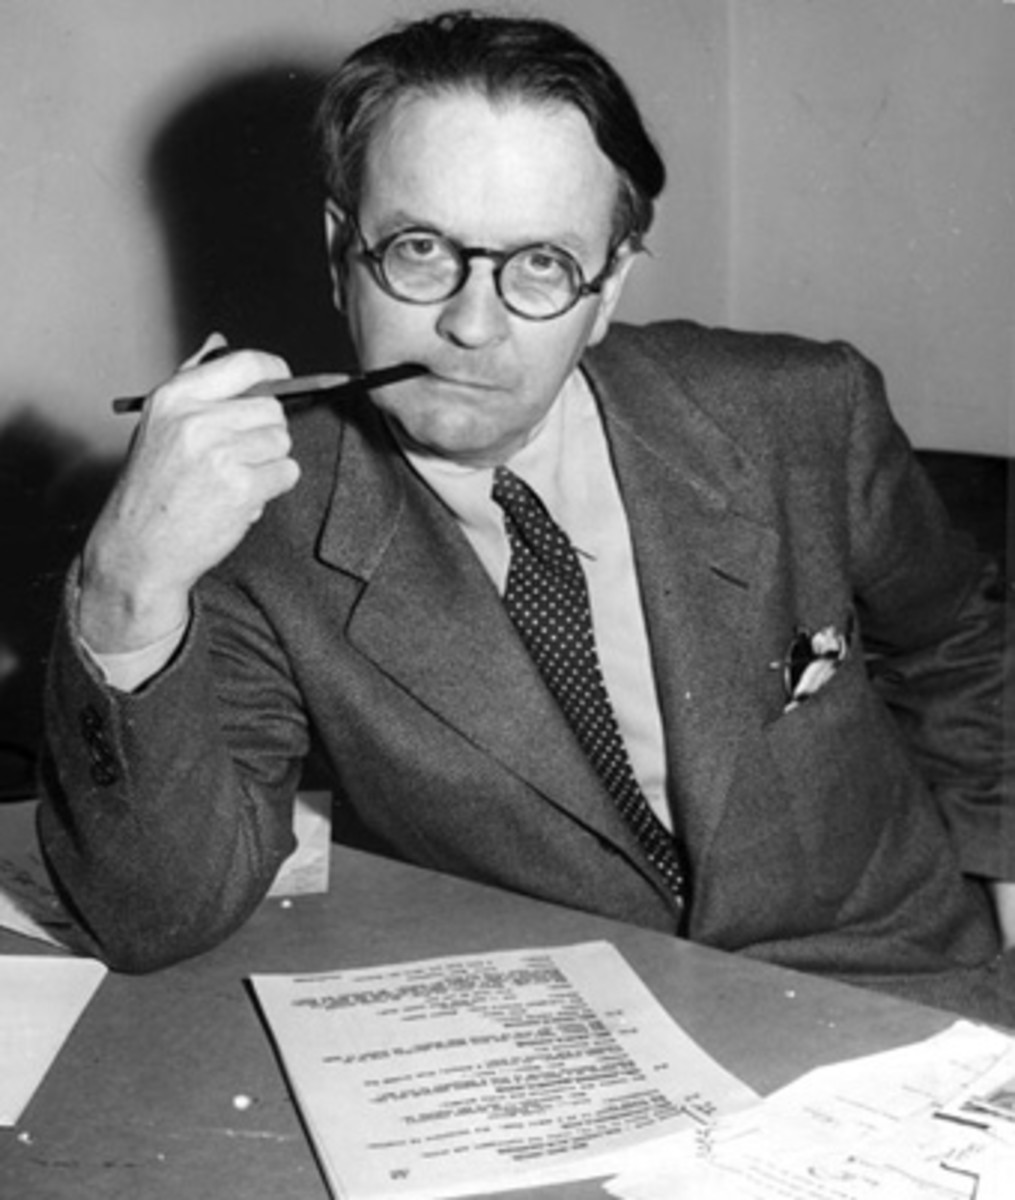 Raymond Chandler, Creator of Phillip Marlowe